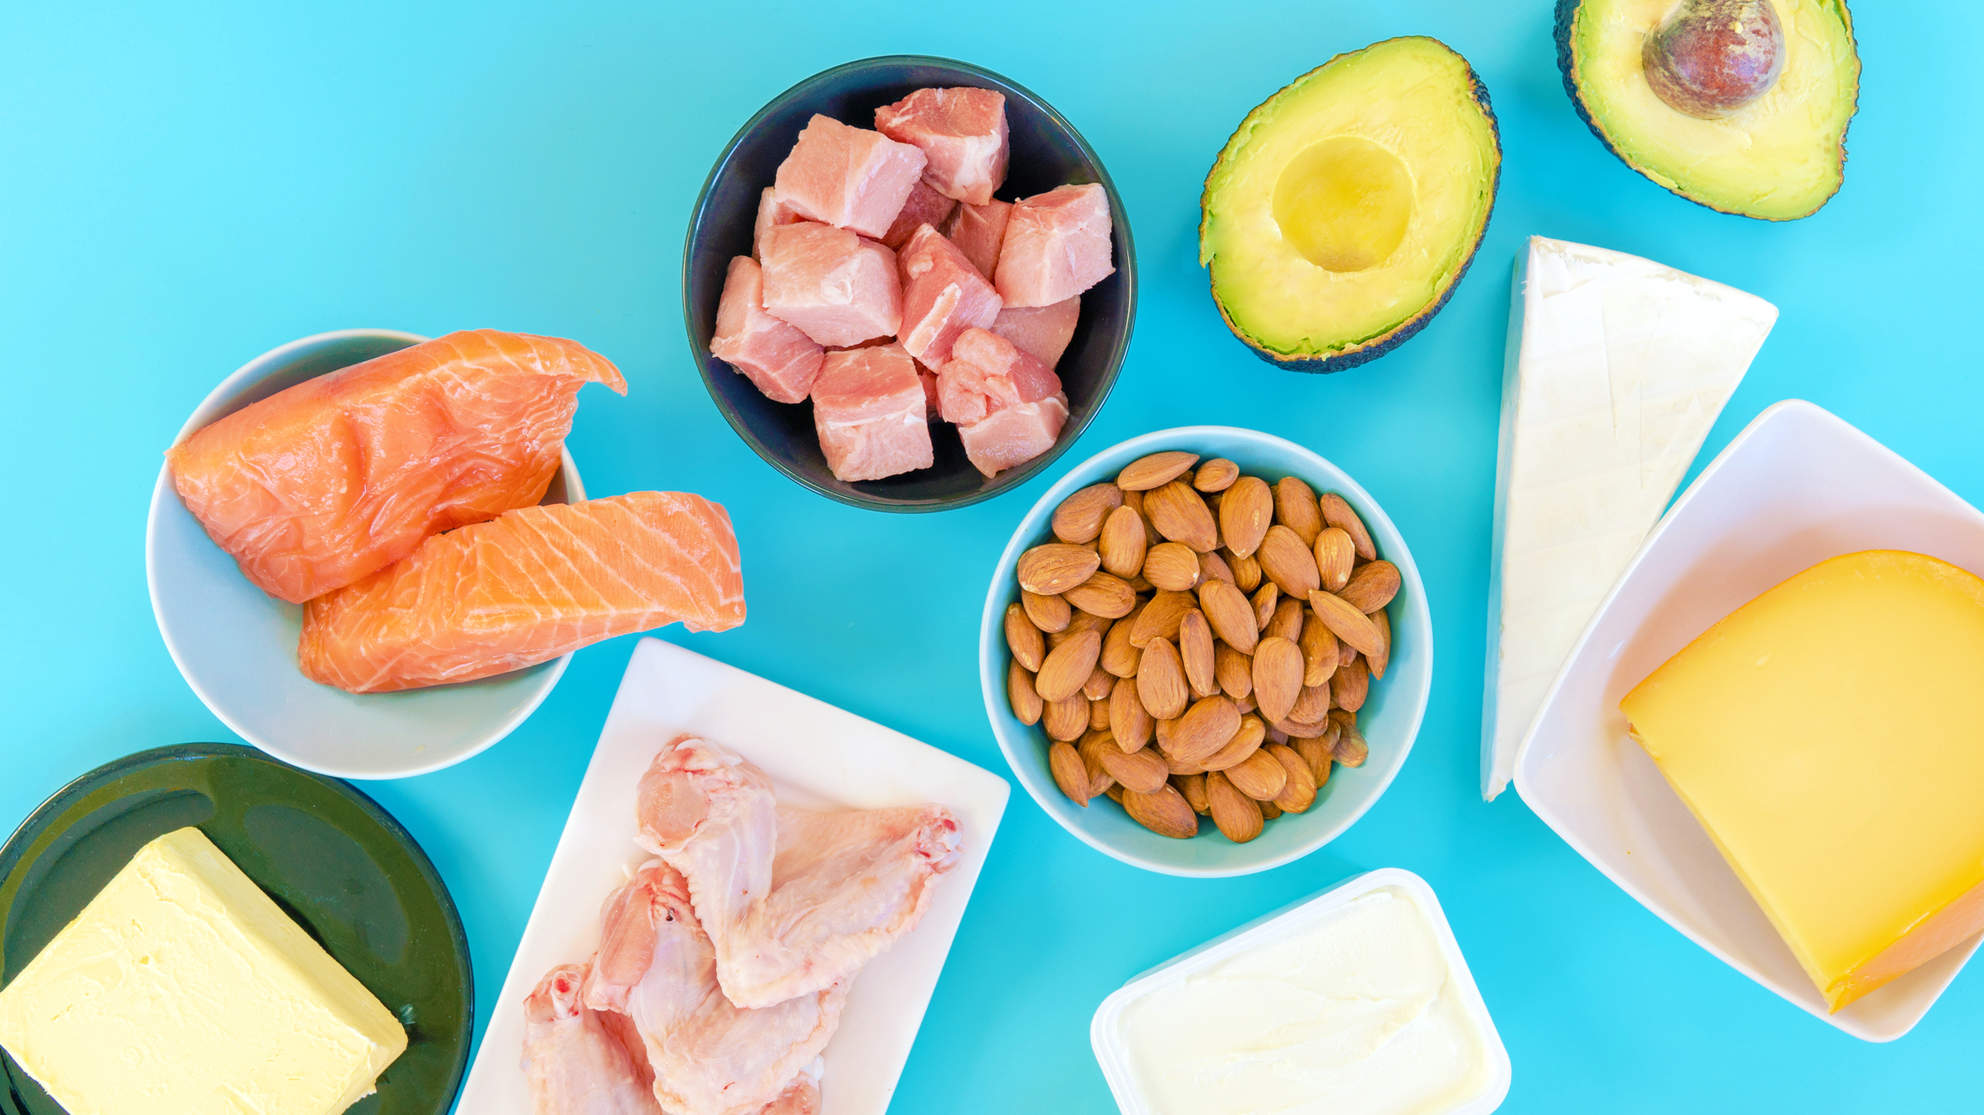 5 Long-Term Health Risks of Going Keto